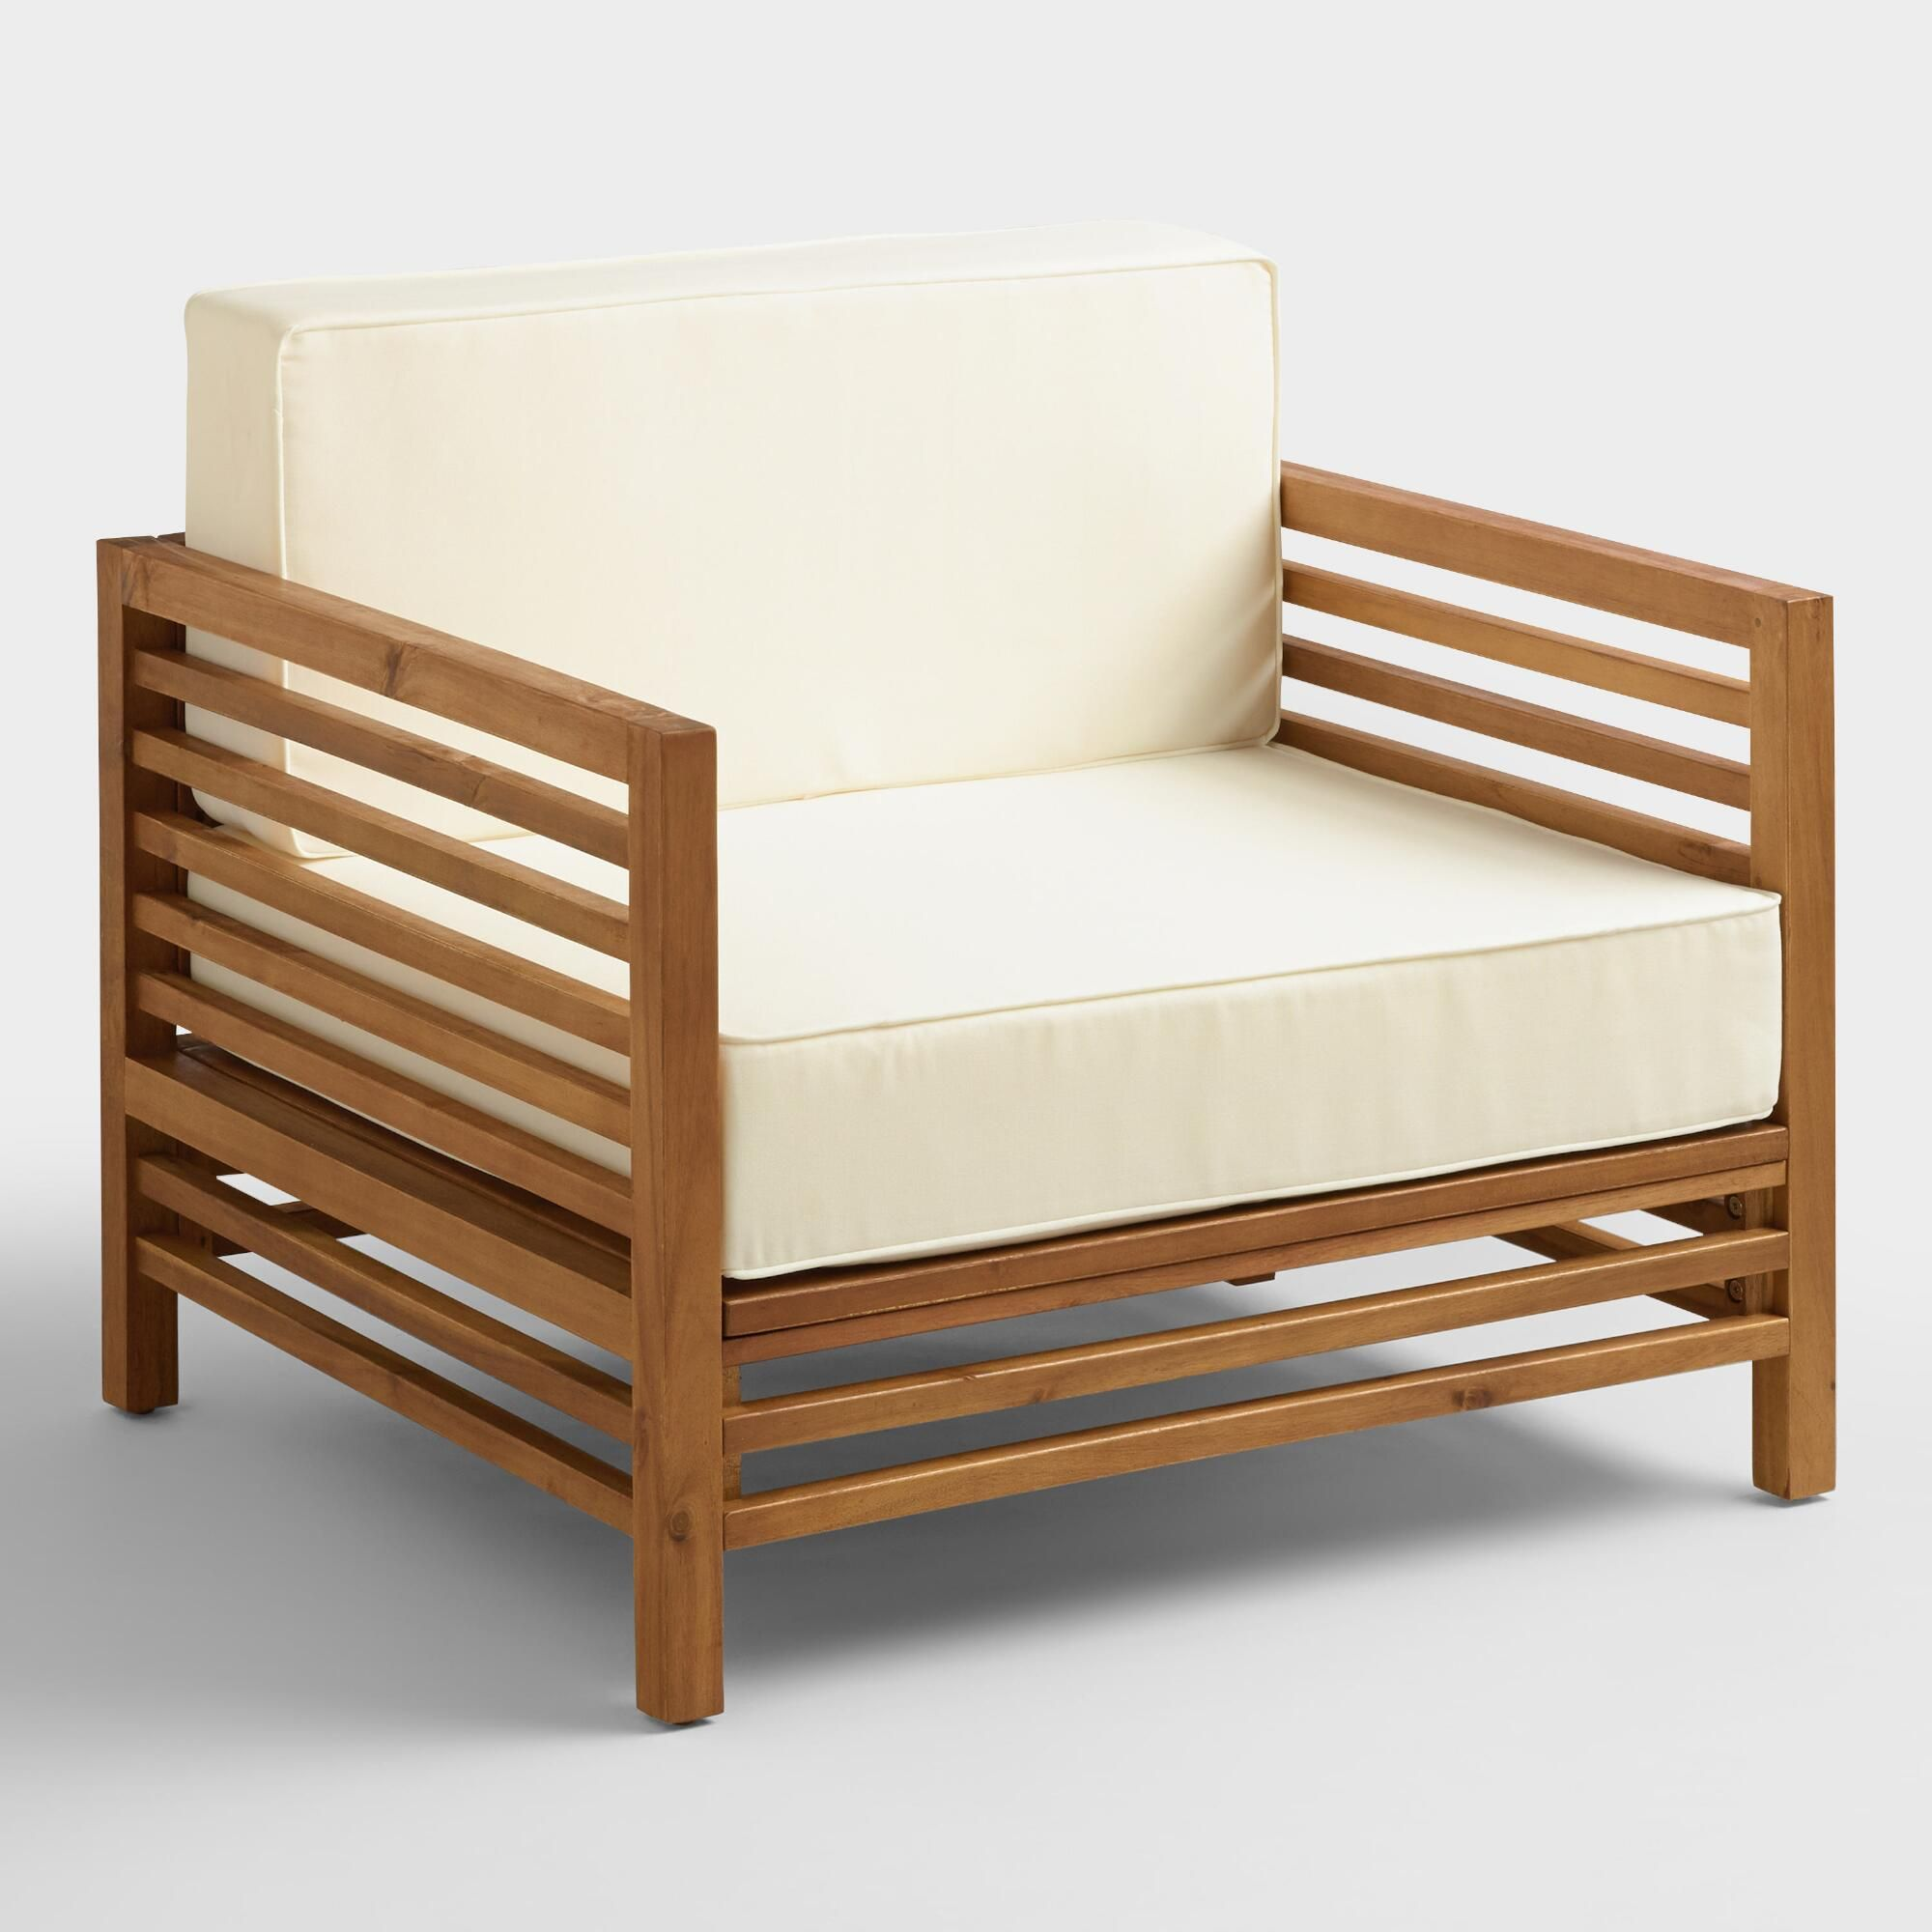 Wood praiano outdoor patio occasional chair natural by world market